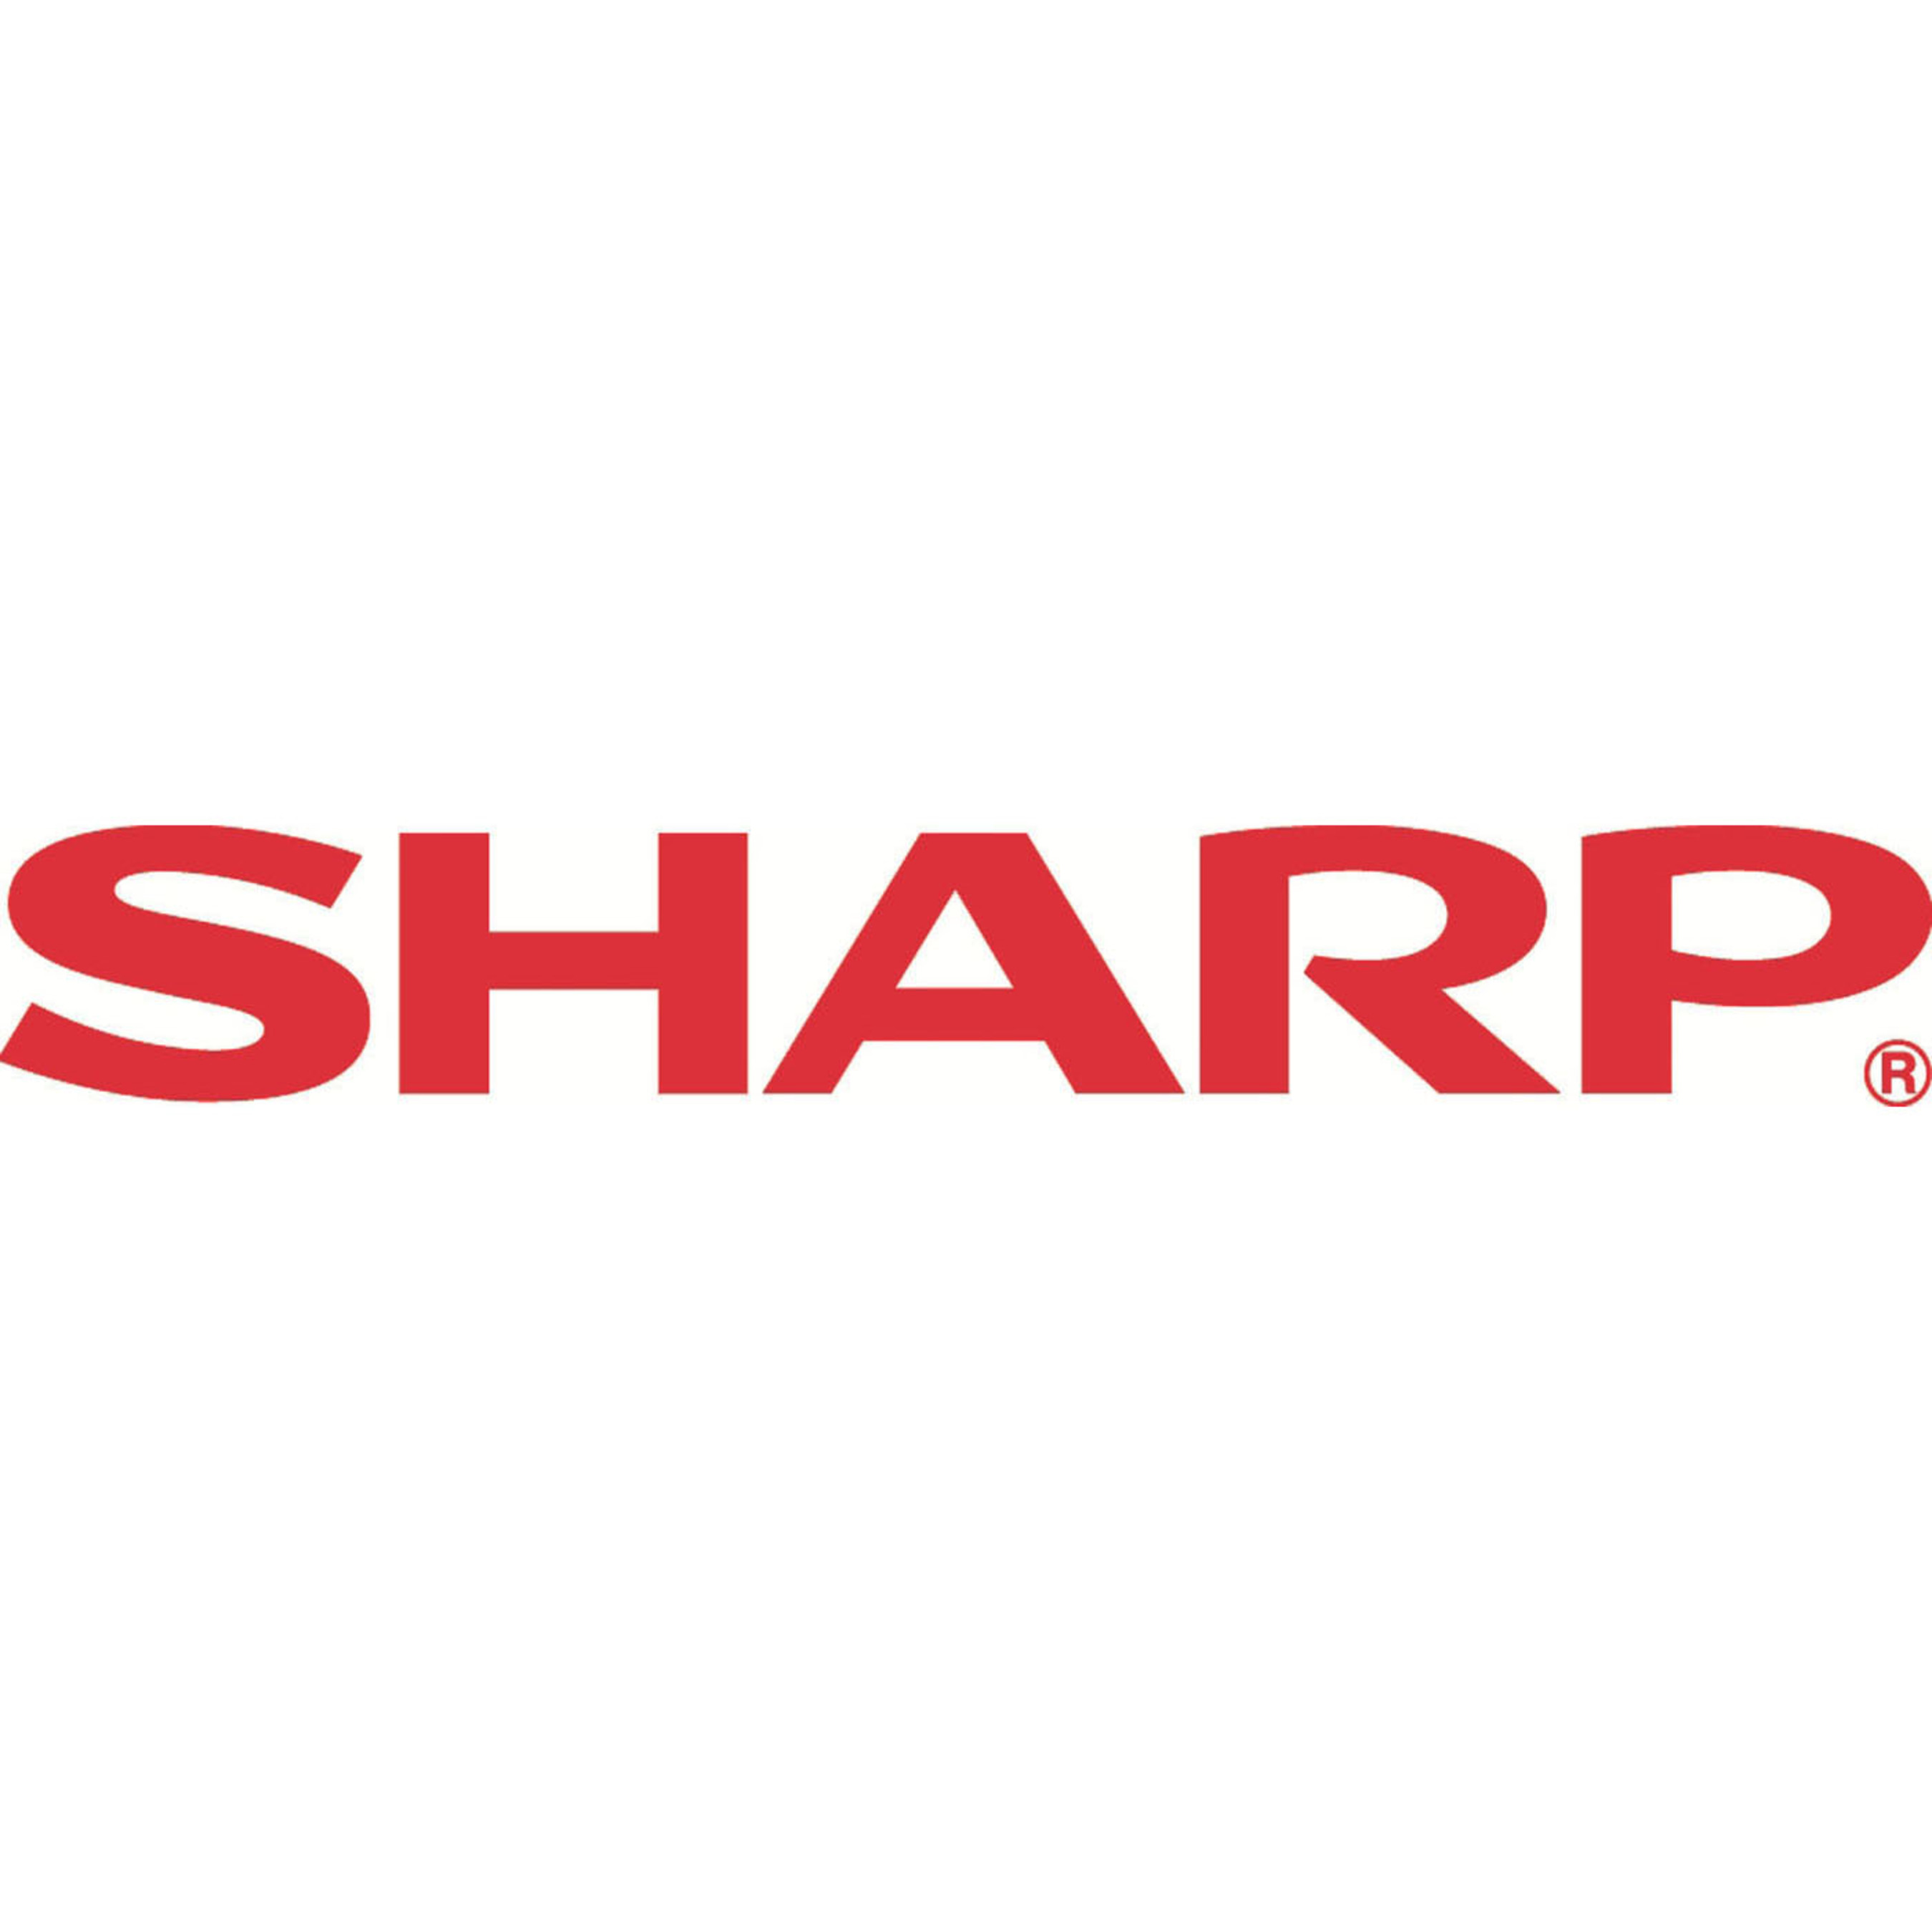 Sharp Electronics Expands Direct, Local Sales Operations In The Carolinas With An Acquisition Of Sandhills Office Systems' Customer Base